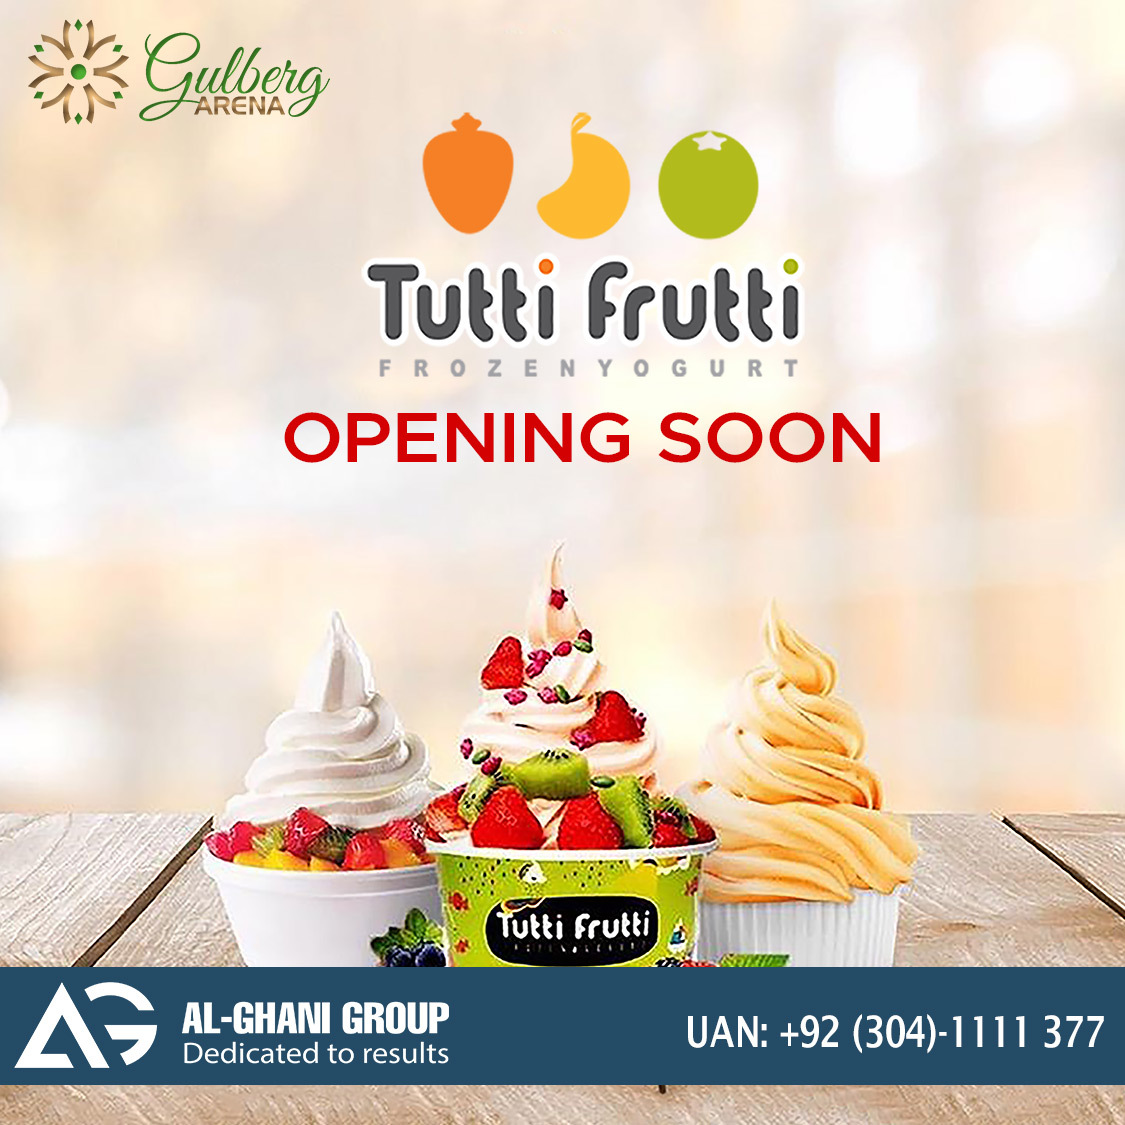 Tutti Frutti outlet in Food Court gulberg arena at Gulberg Greens Islamabad